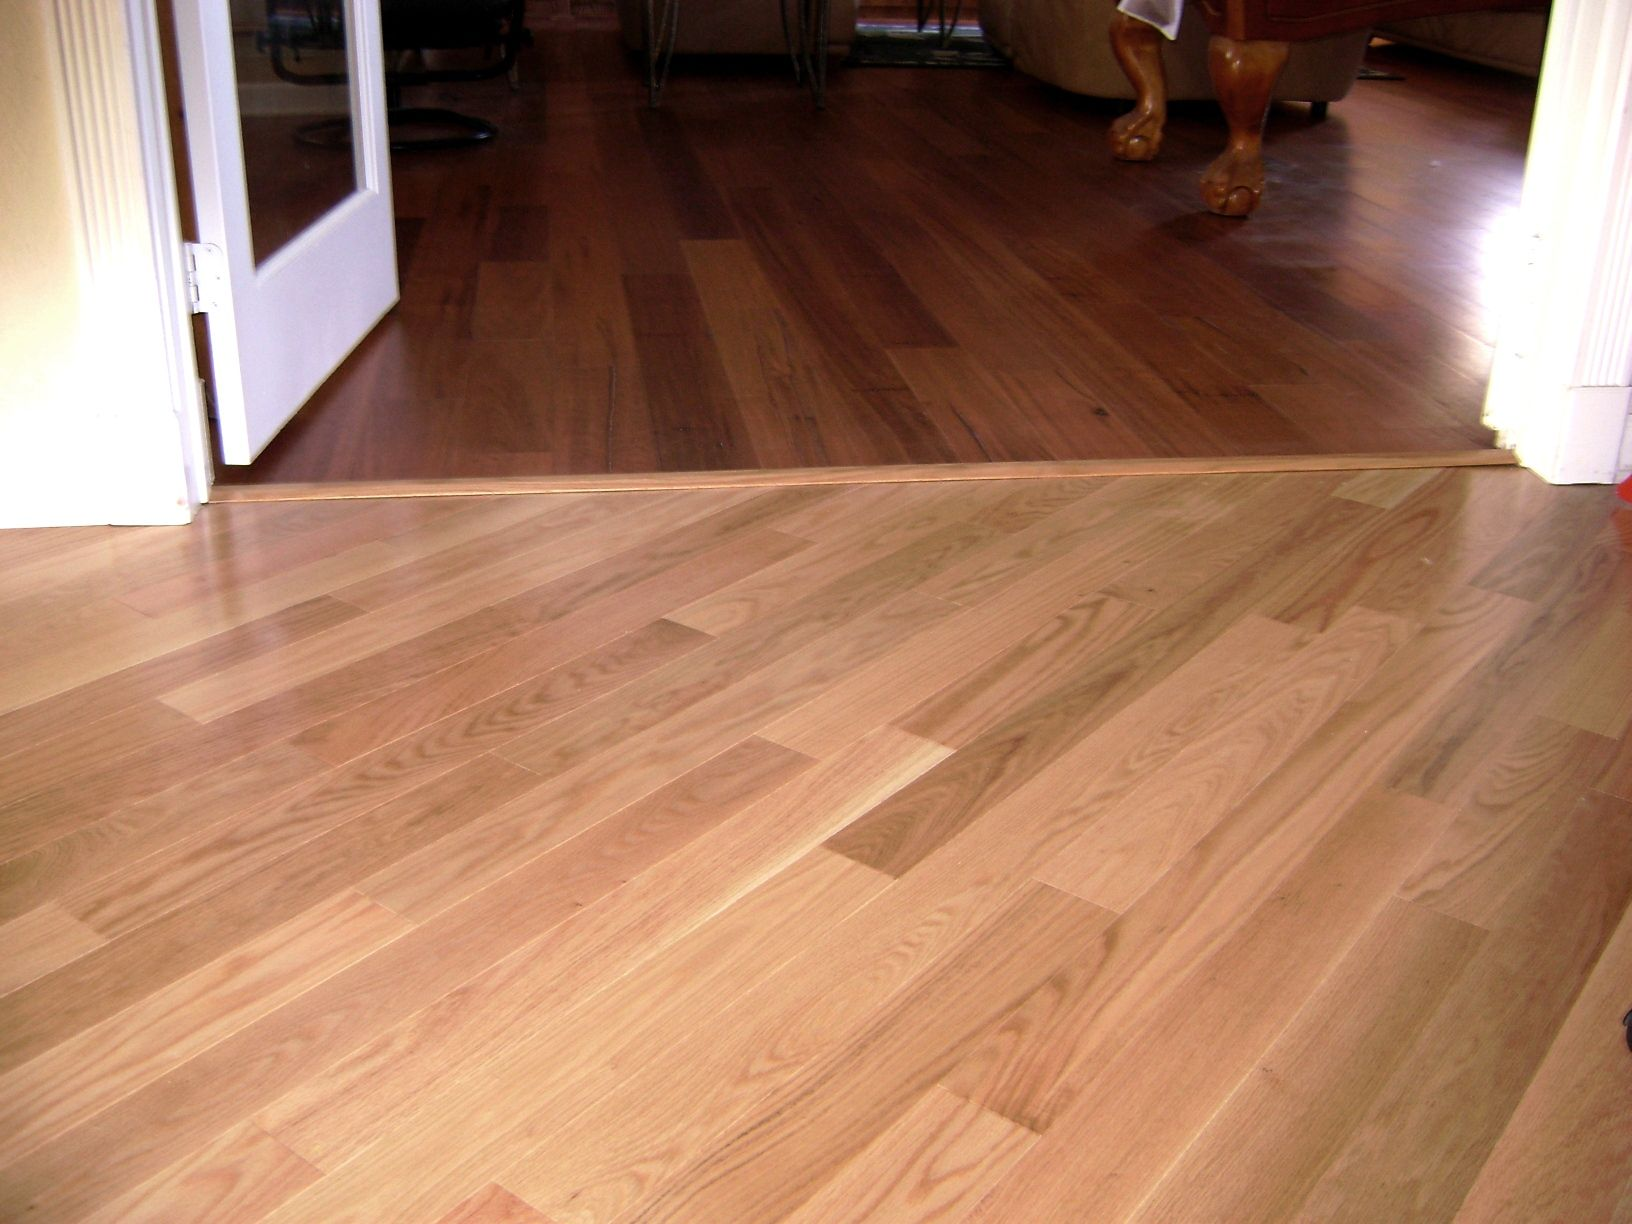 Light To Dark Wood Transition On A Diagonal Flooring Light